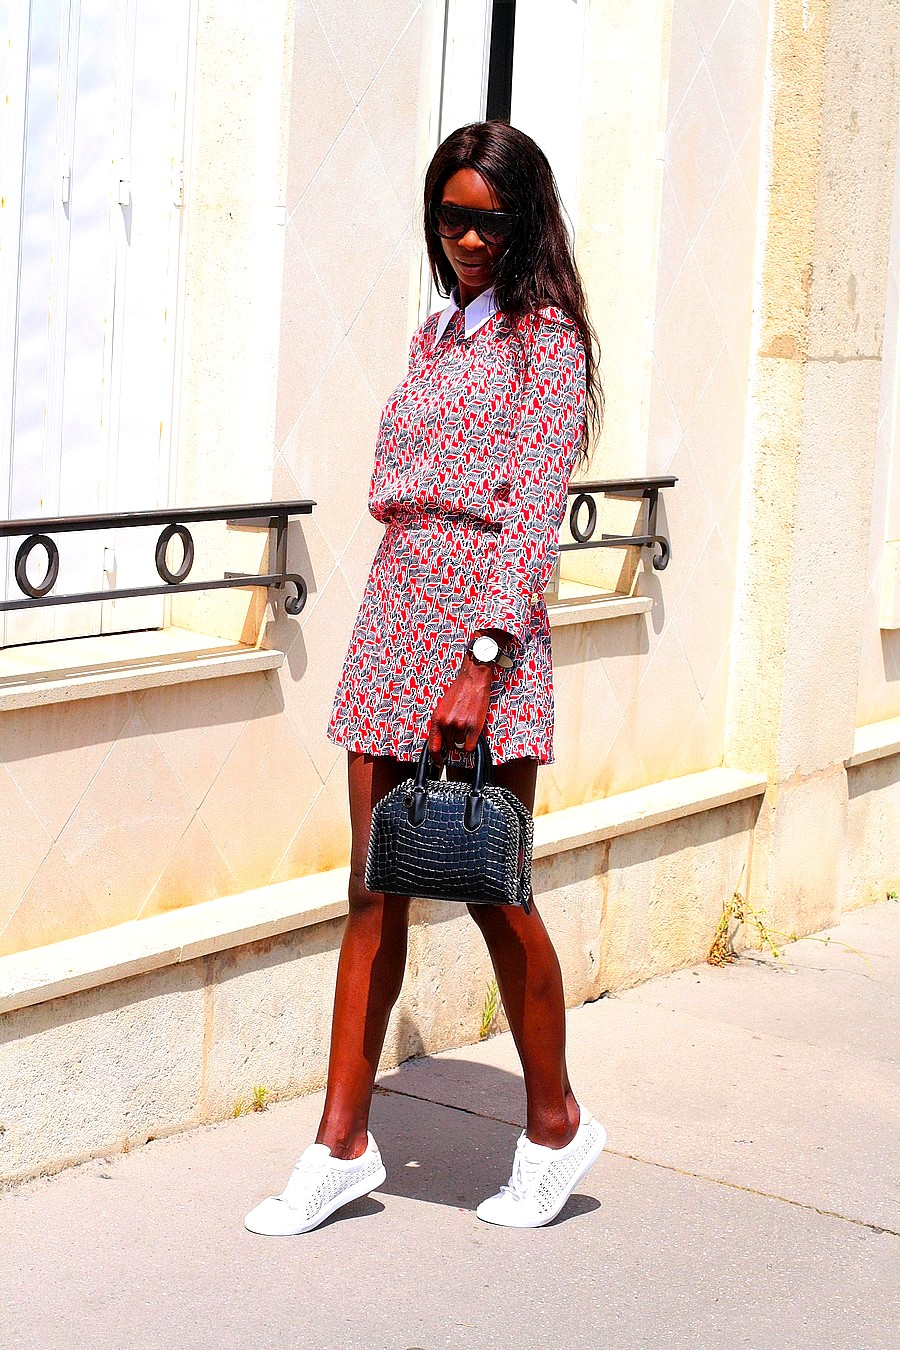 inspiration-look-rentree-blogueuse-ensemble-zara-sac-stella-mccartney-falabella